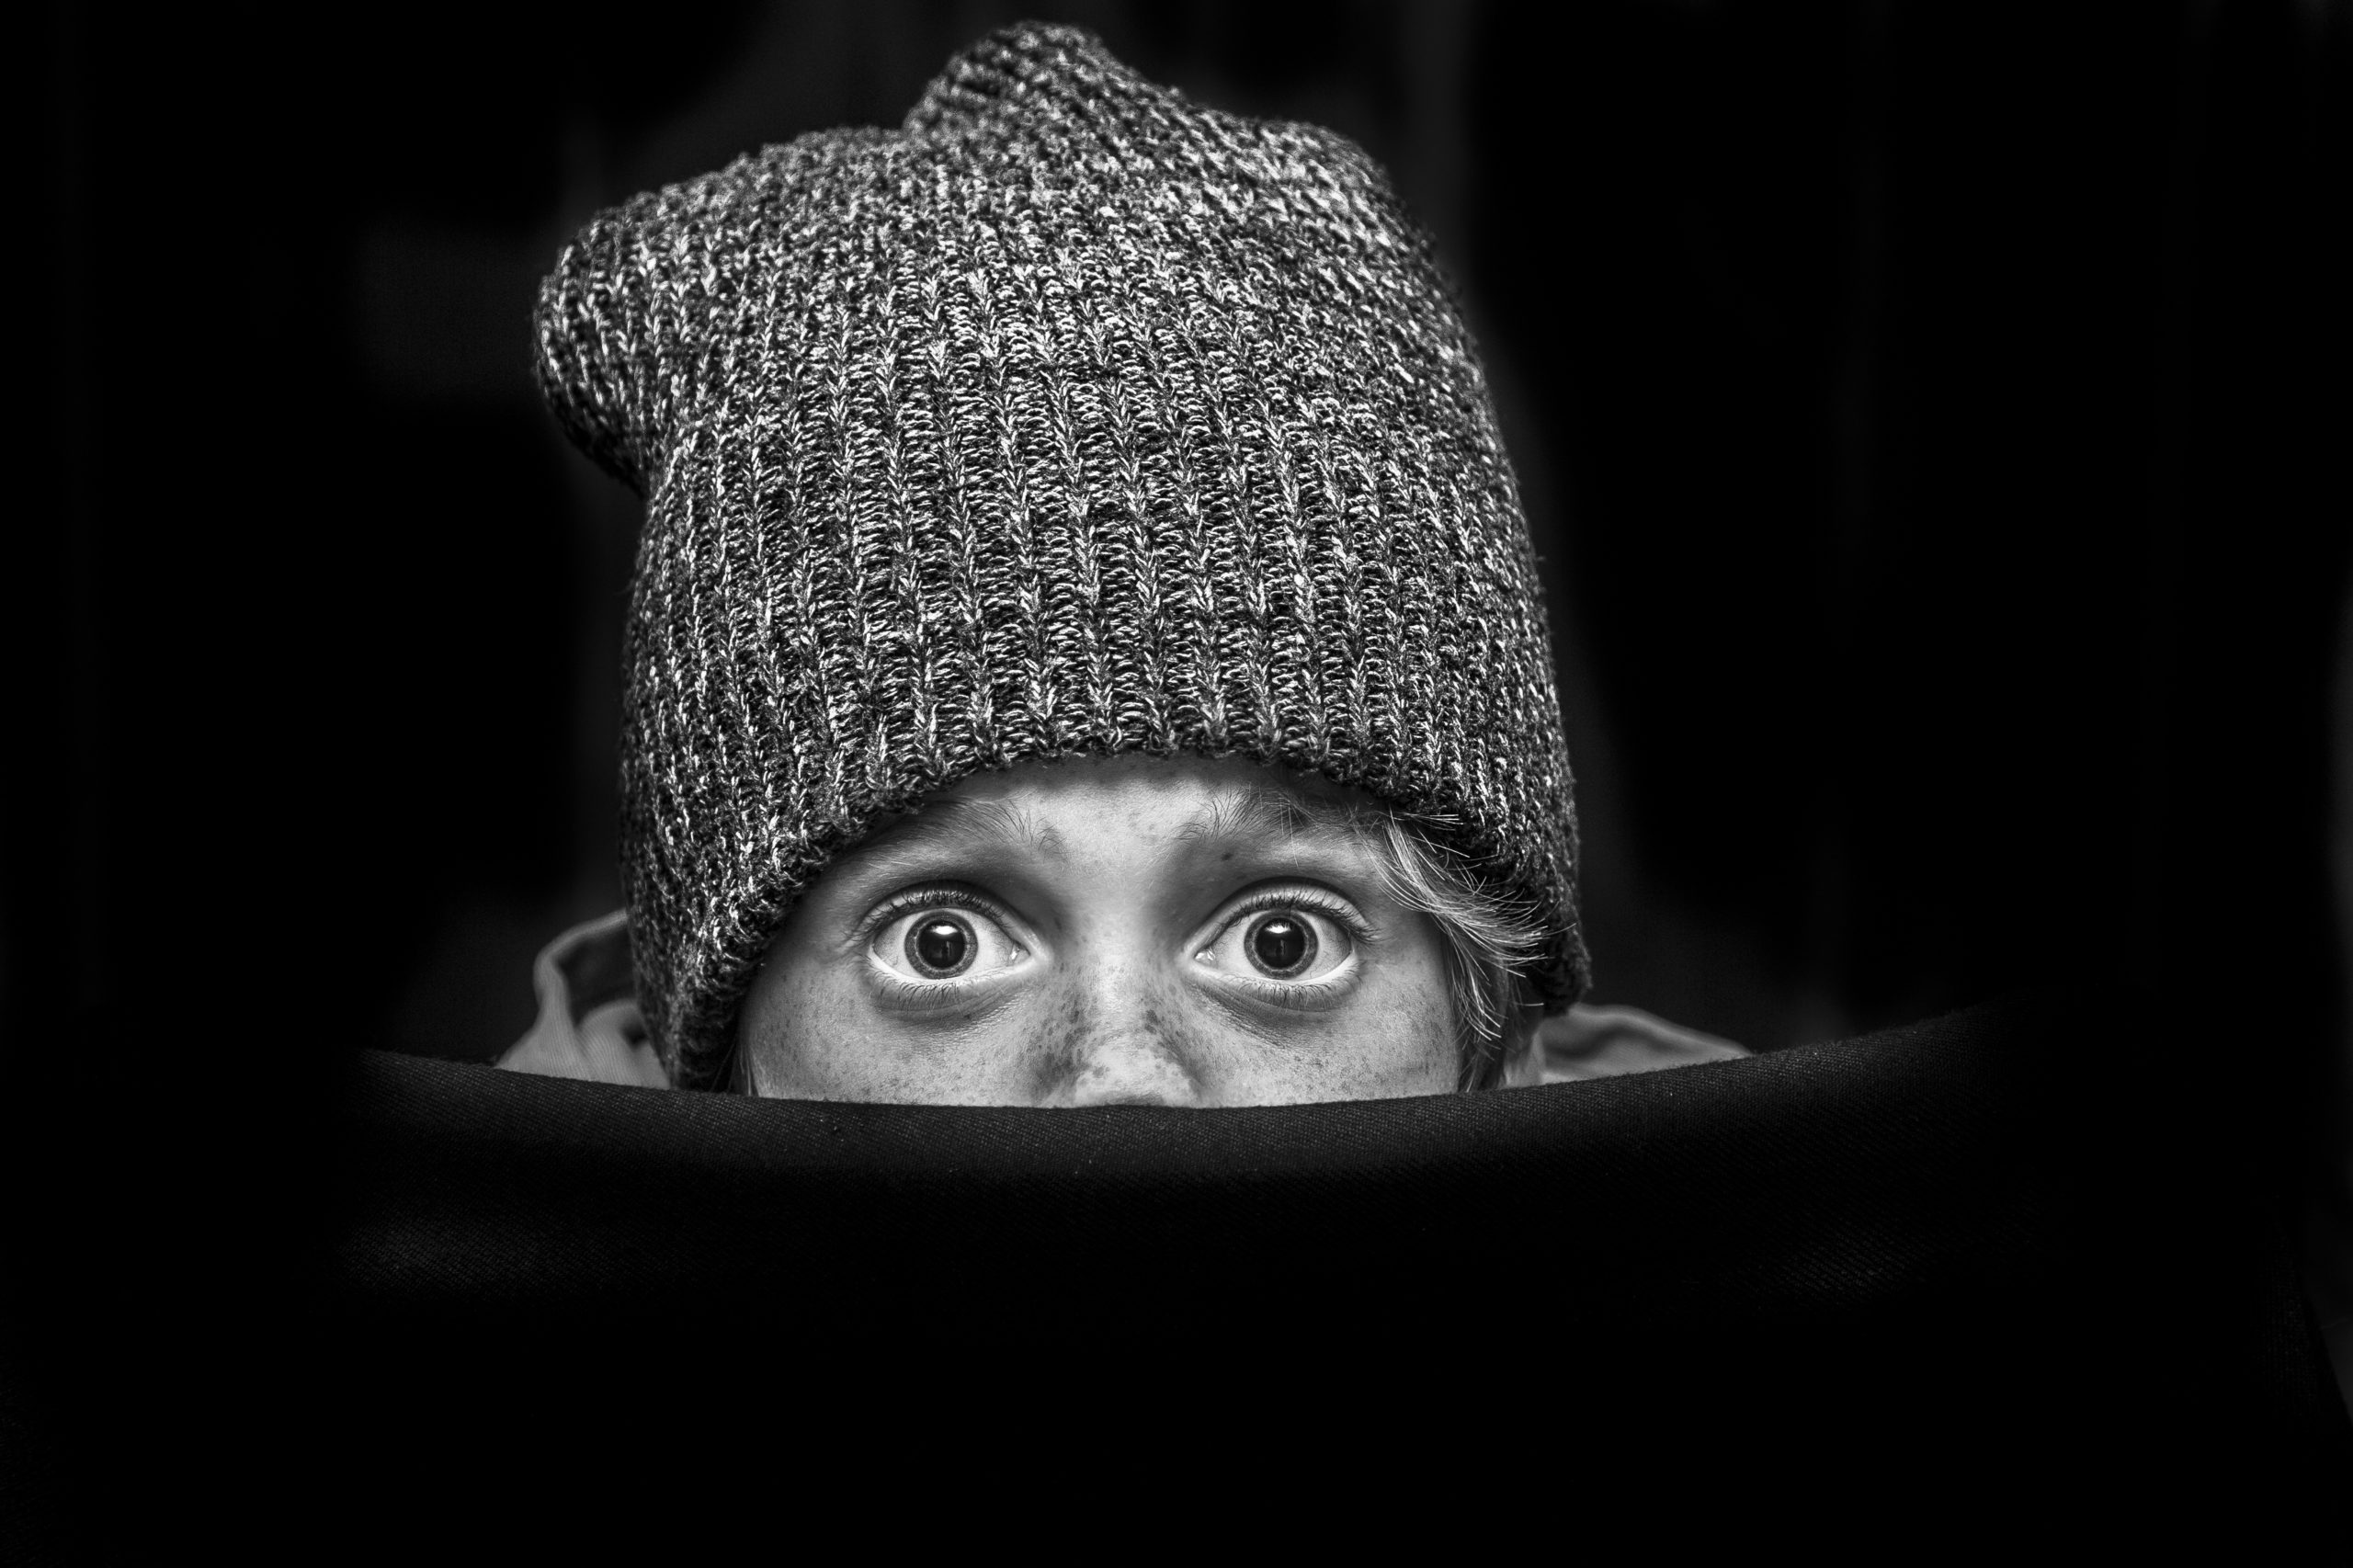 Child peaking out under beanie hat, looking shocked